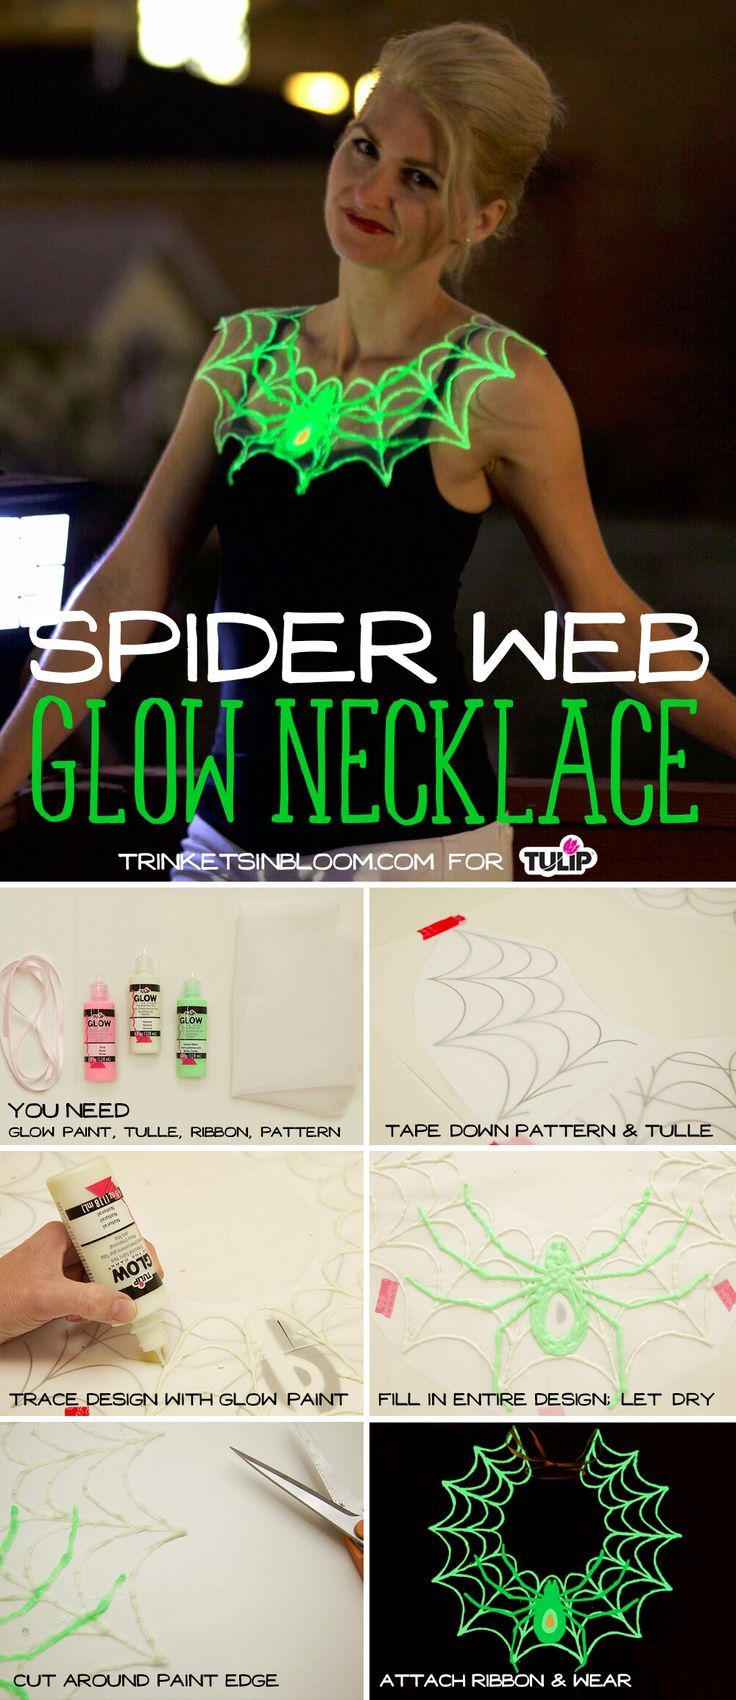 This spider web glow necklace by @trinketsinbloom is the perfect DIY costume accessory for your Halloween party or masquerade ball.  When put under a blacklight, it glows SUPER bright too! Make it using tulle, Tulip dimensional paint a.k.a. Puffy Paint, tulle, a ribbon and the pattern you can download by clicking the link.